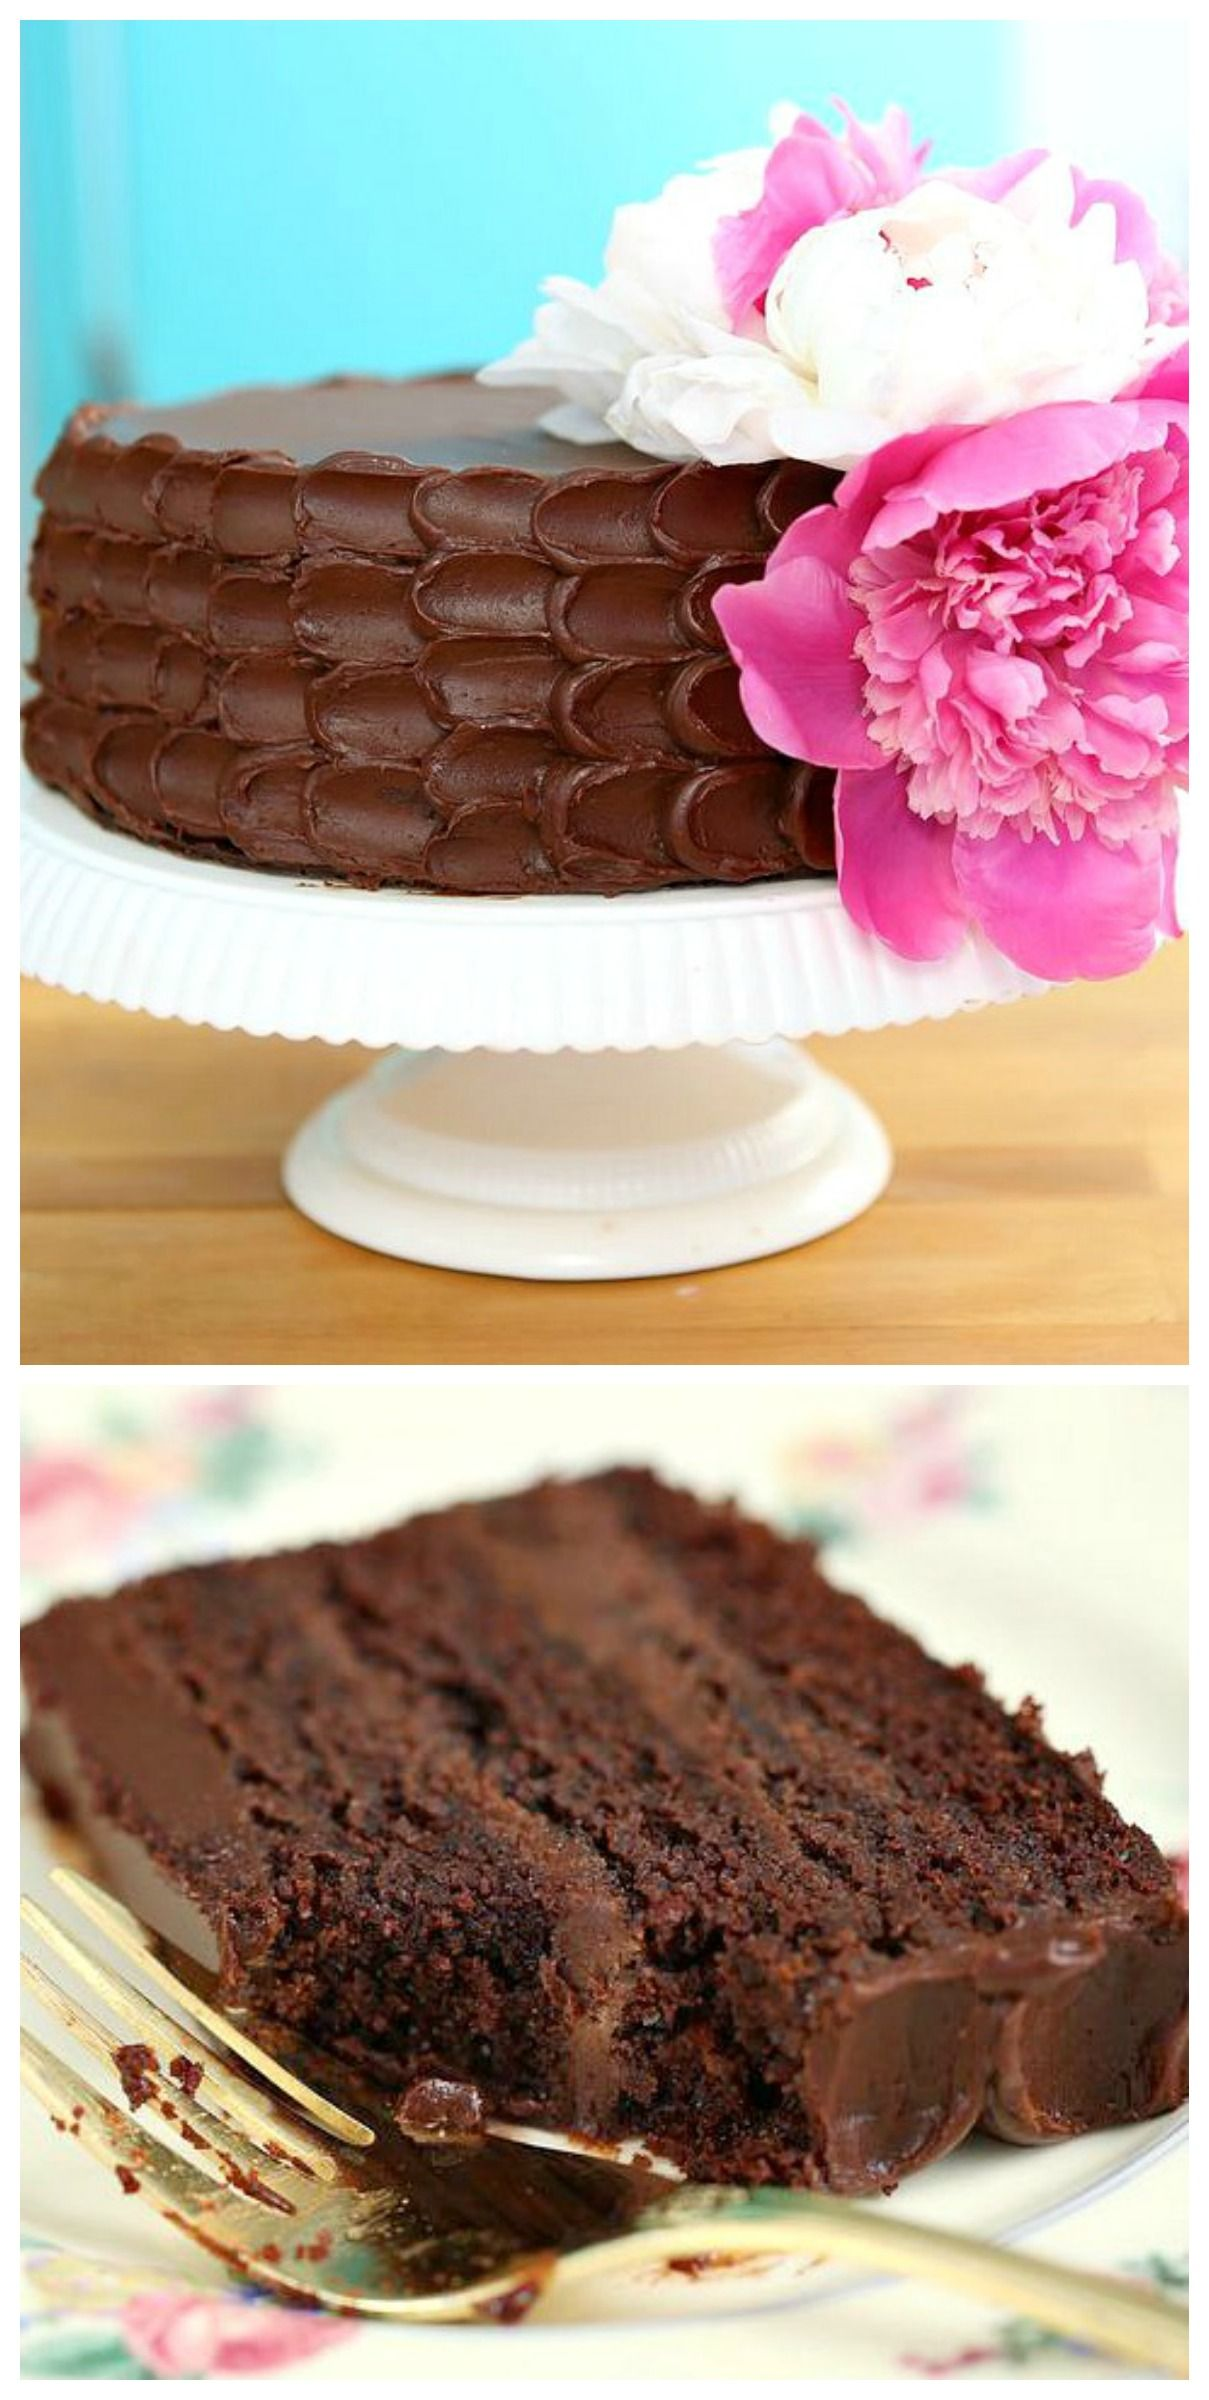 Cake Design Pro : How to videos for cake decorating on Pinterest 495 Pins